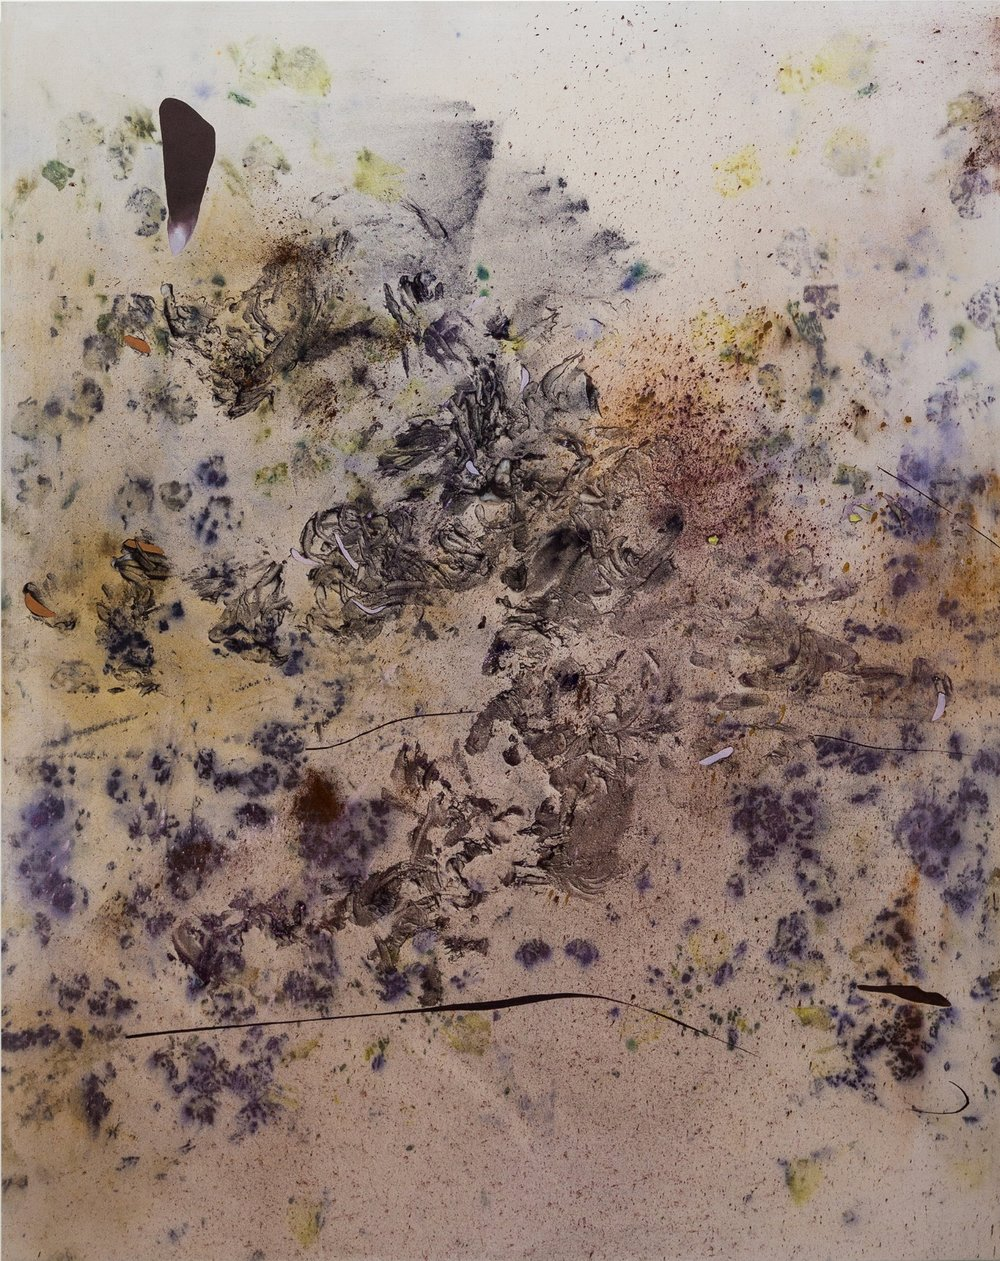 Pollen Hunter, Cold Wax Medium, Oil, Raw Pigments, and Various Plant Materials (including Roses, Irises, Ferns, Onion Skins, Wildflowers, and Rust Sediments) on Canvas, 5x4 feet, 2018